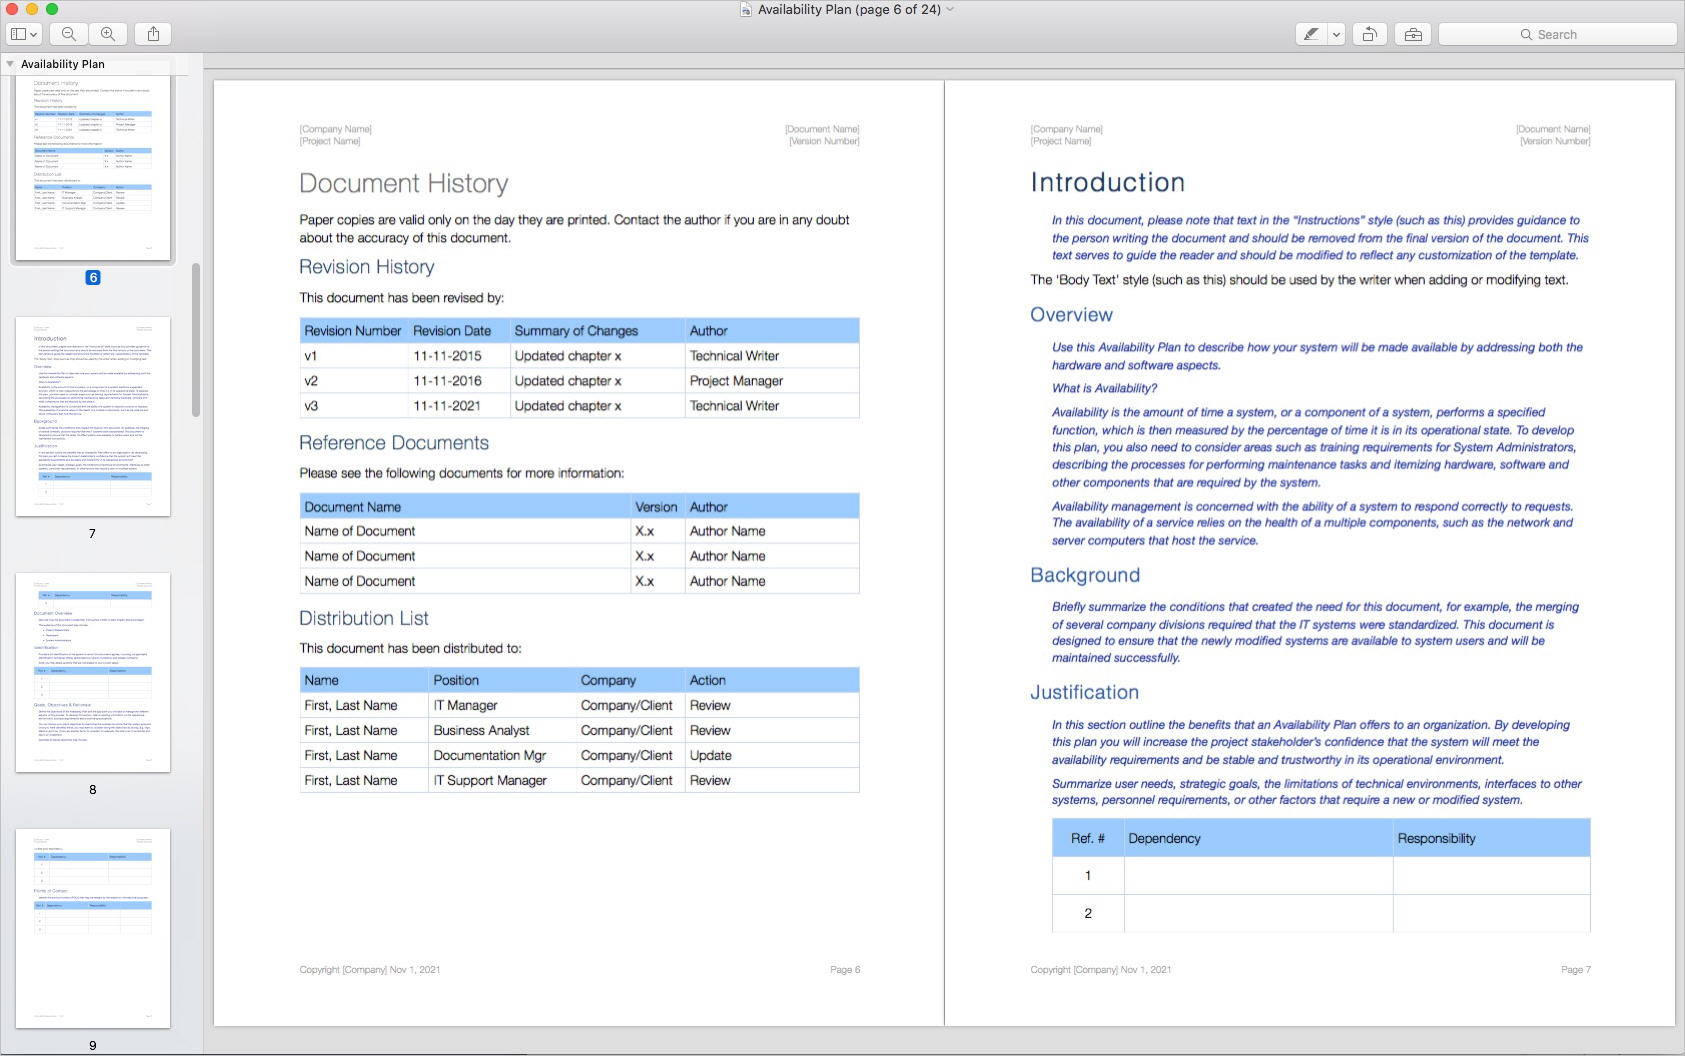 Availability_Plan_Template_Apple_iWork_Pages_Document_History